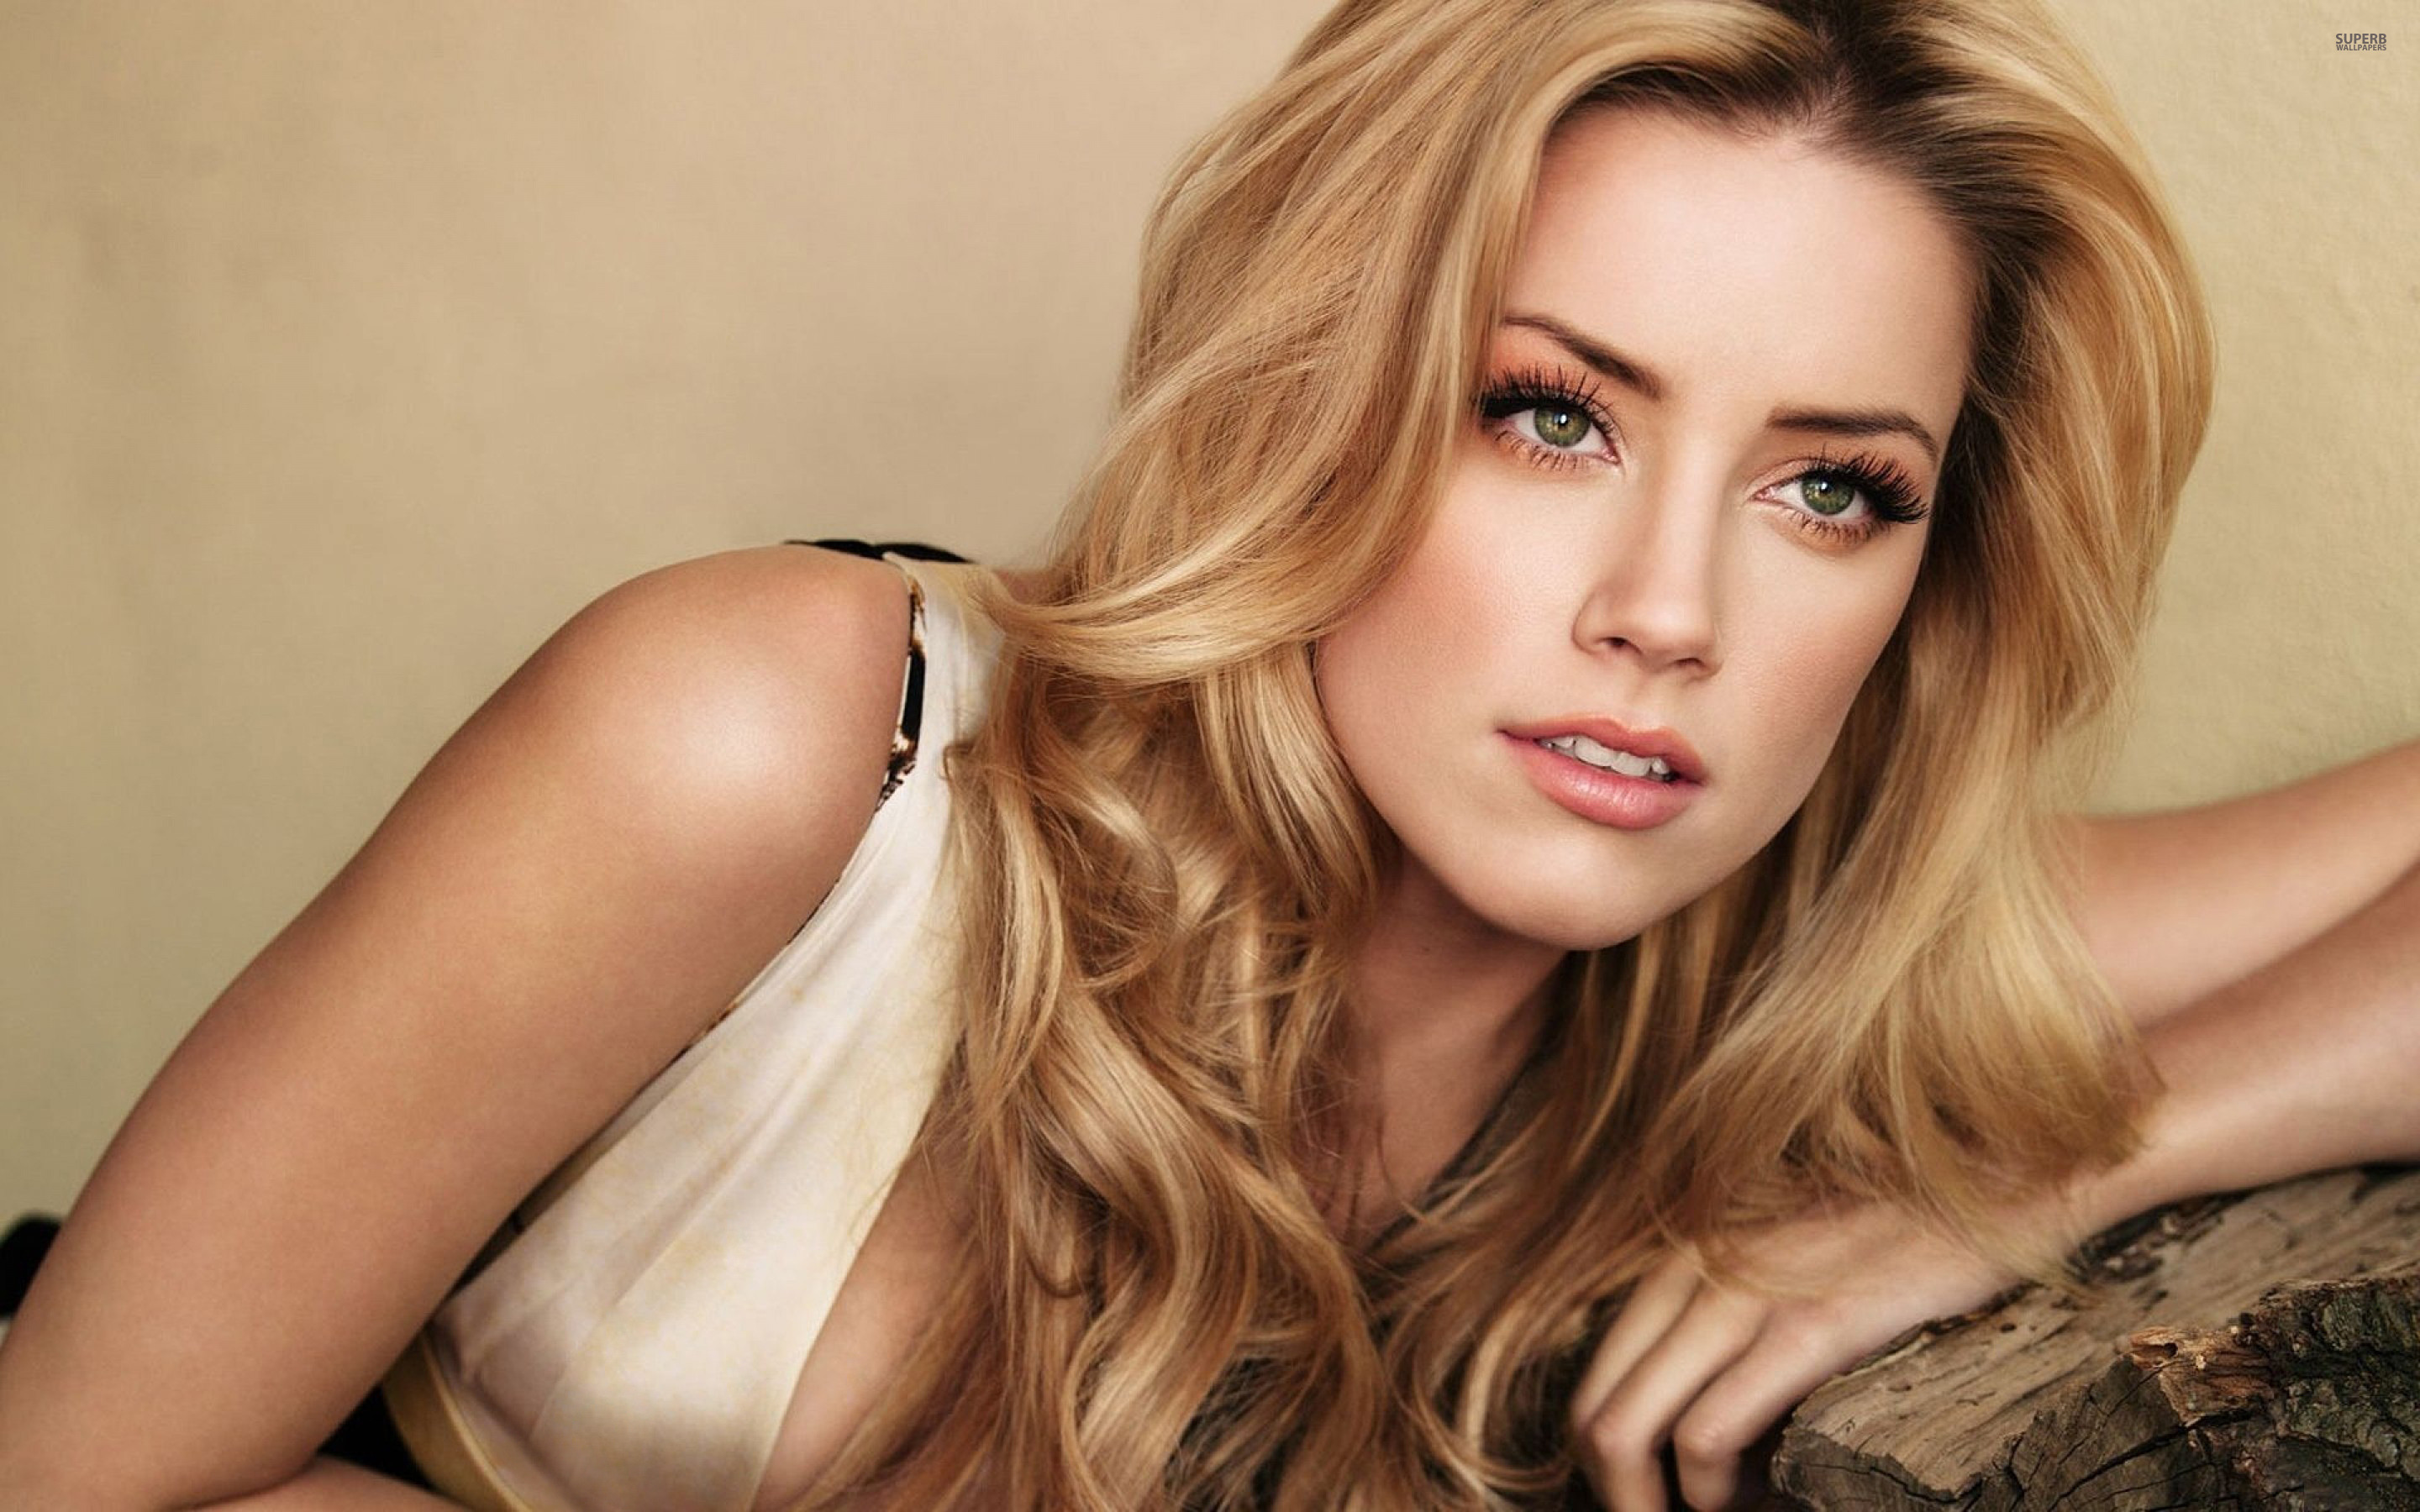 Amber Heard Nue amber heard photoshoot - amber heard photo (39951817) - fanpop